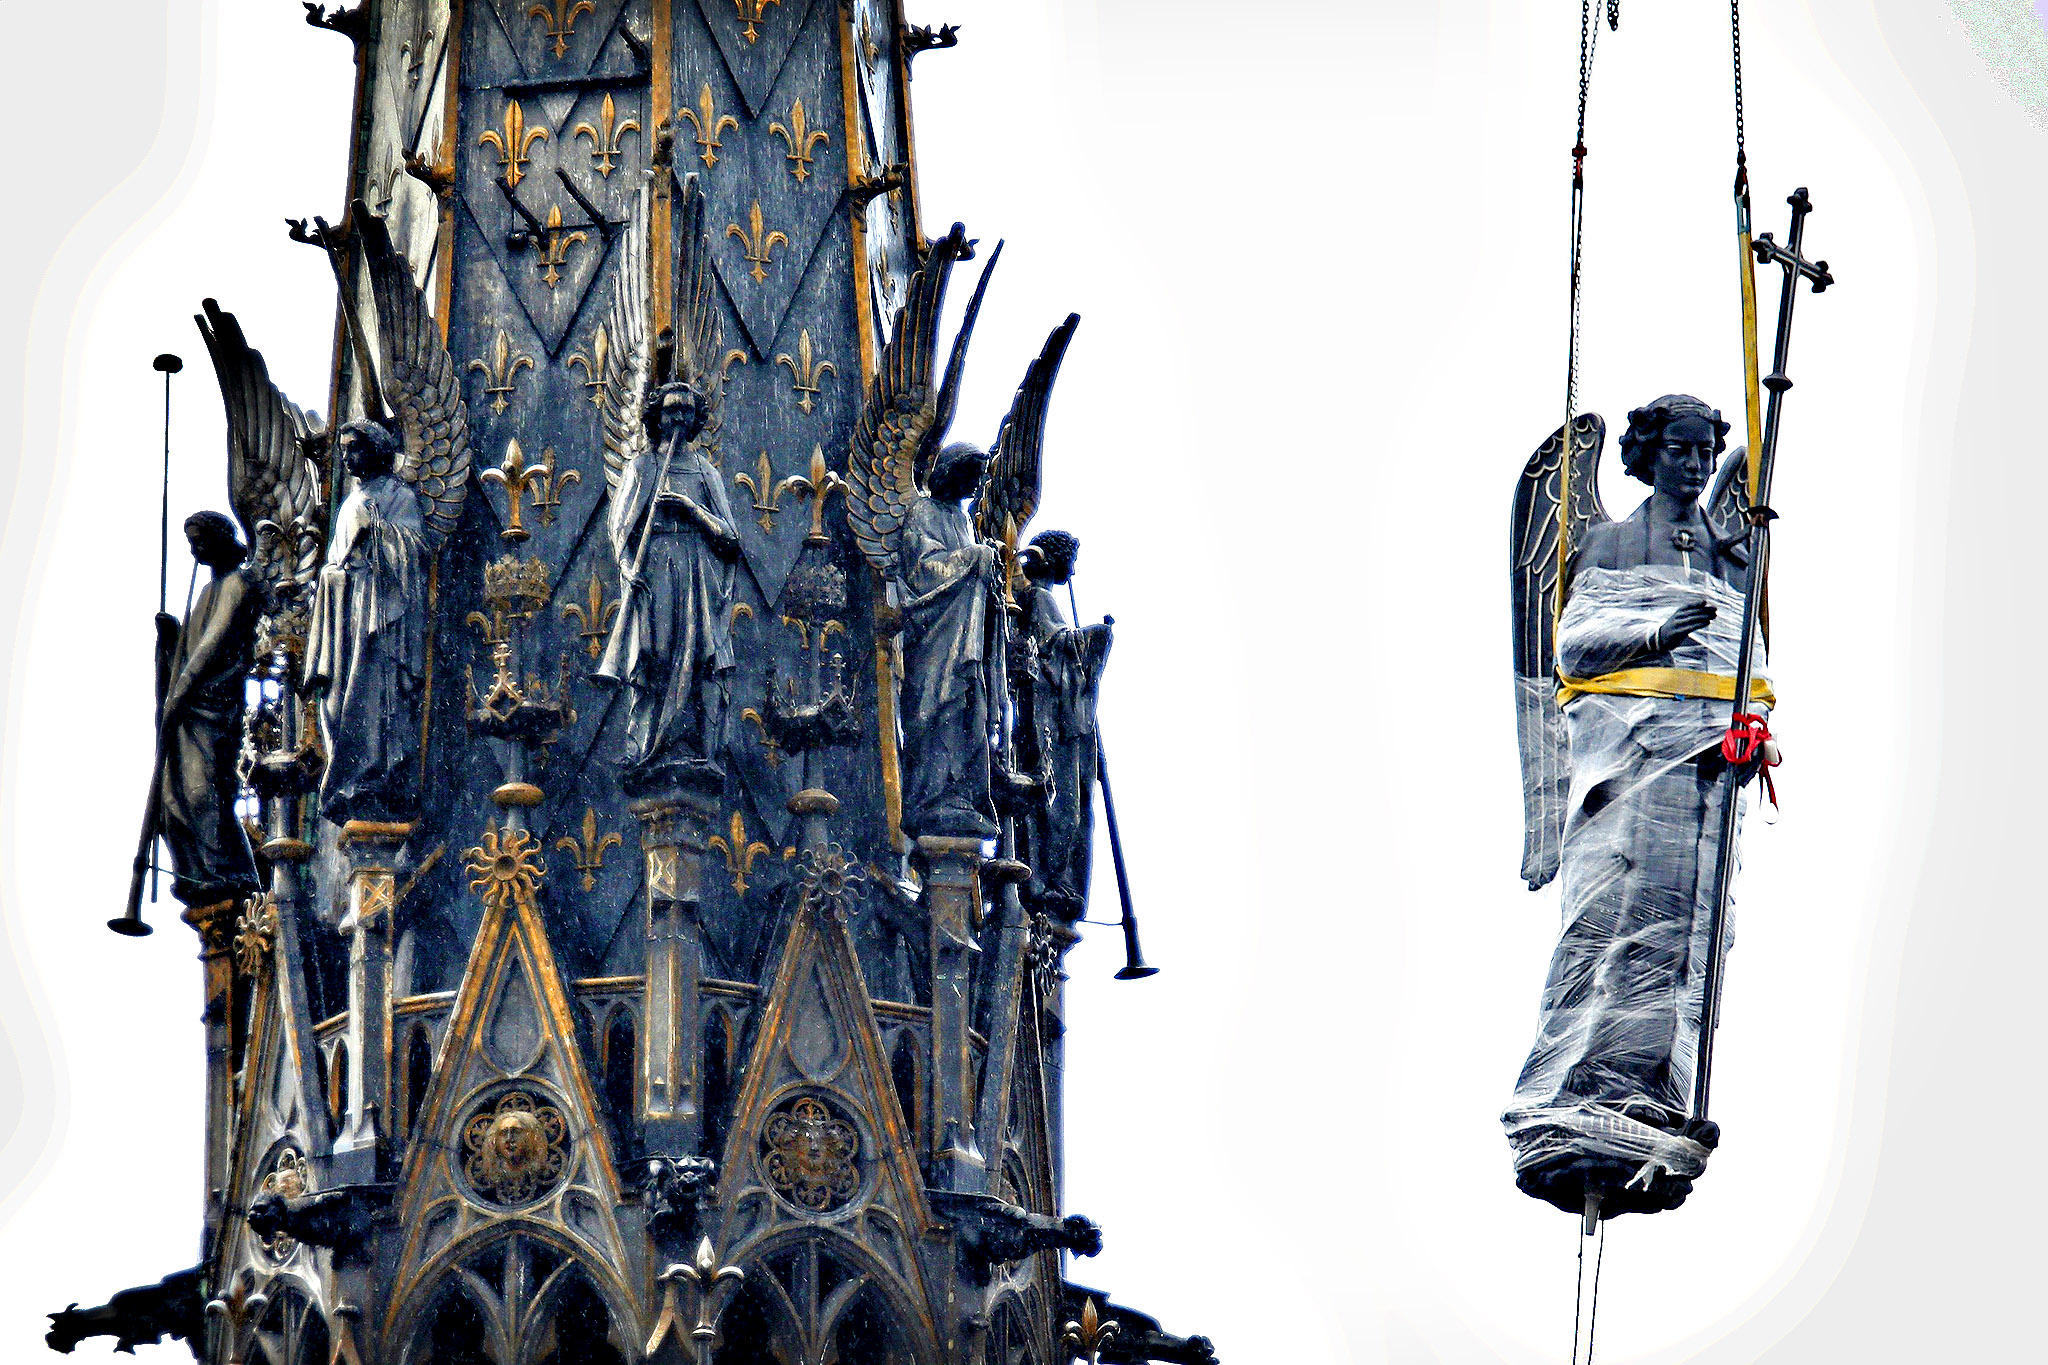 The restored statue archange Saint Michel (Saint Michael Archangel) is lifted up next to the spire of the Sainte-Chapelle (Holy Chapel) in Paris November 14, 2013. The reinstallation of the statue is part of the restoration of  the Chapel, located within the Palais de Justice complex on the Ile de la Cite in Paris, which has started in 2008 and will finish at the end of 2014.